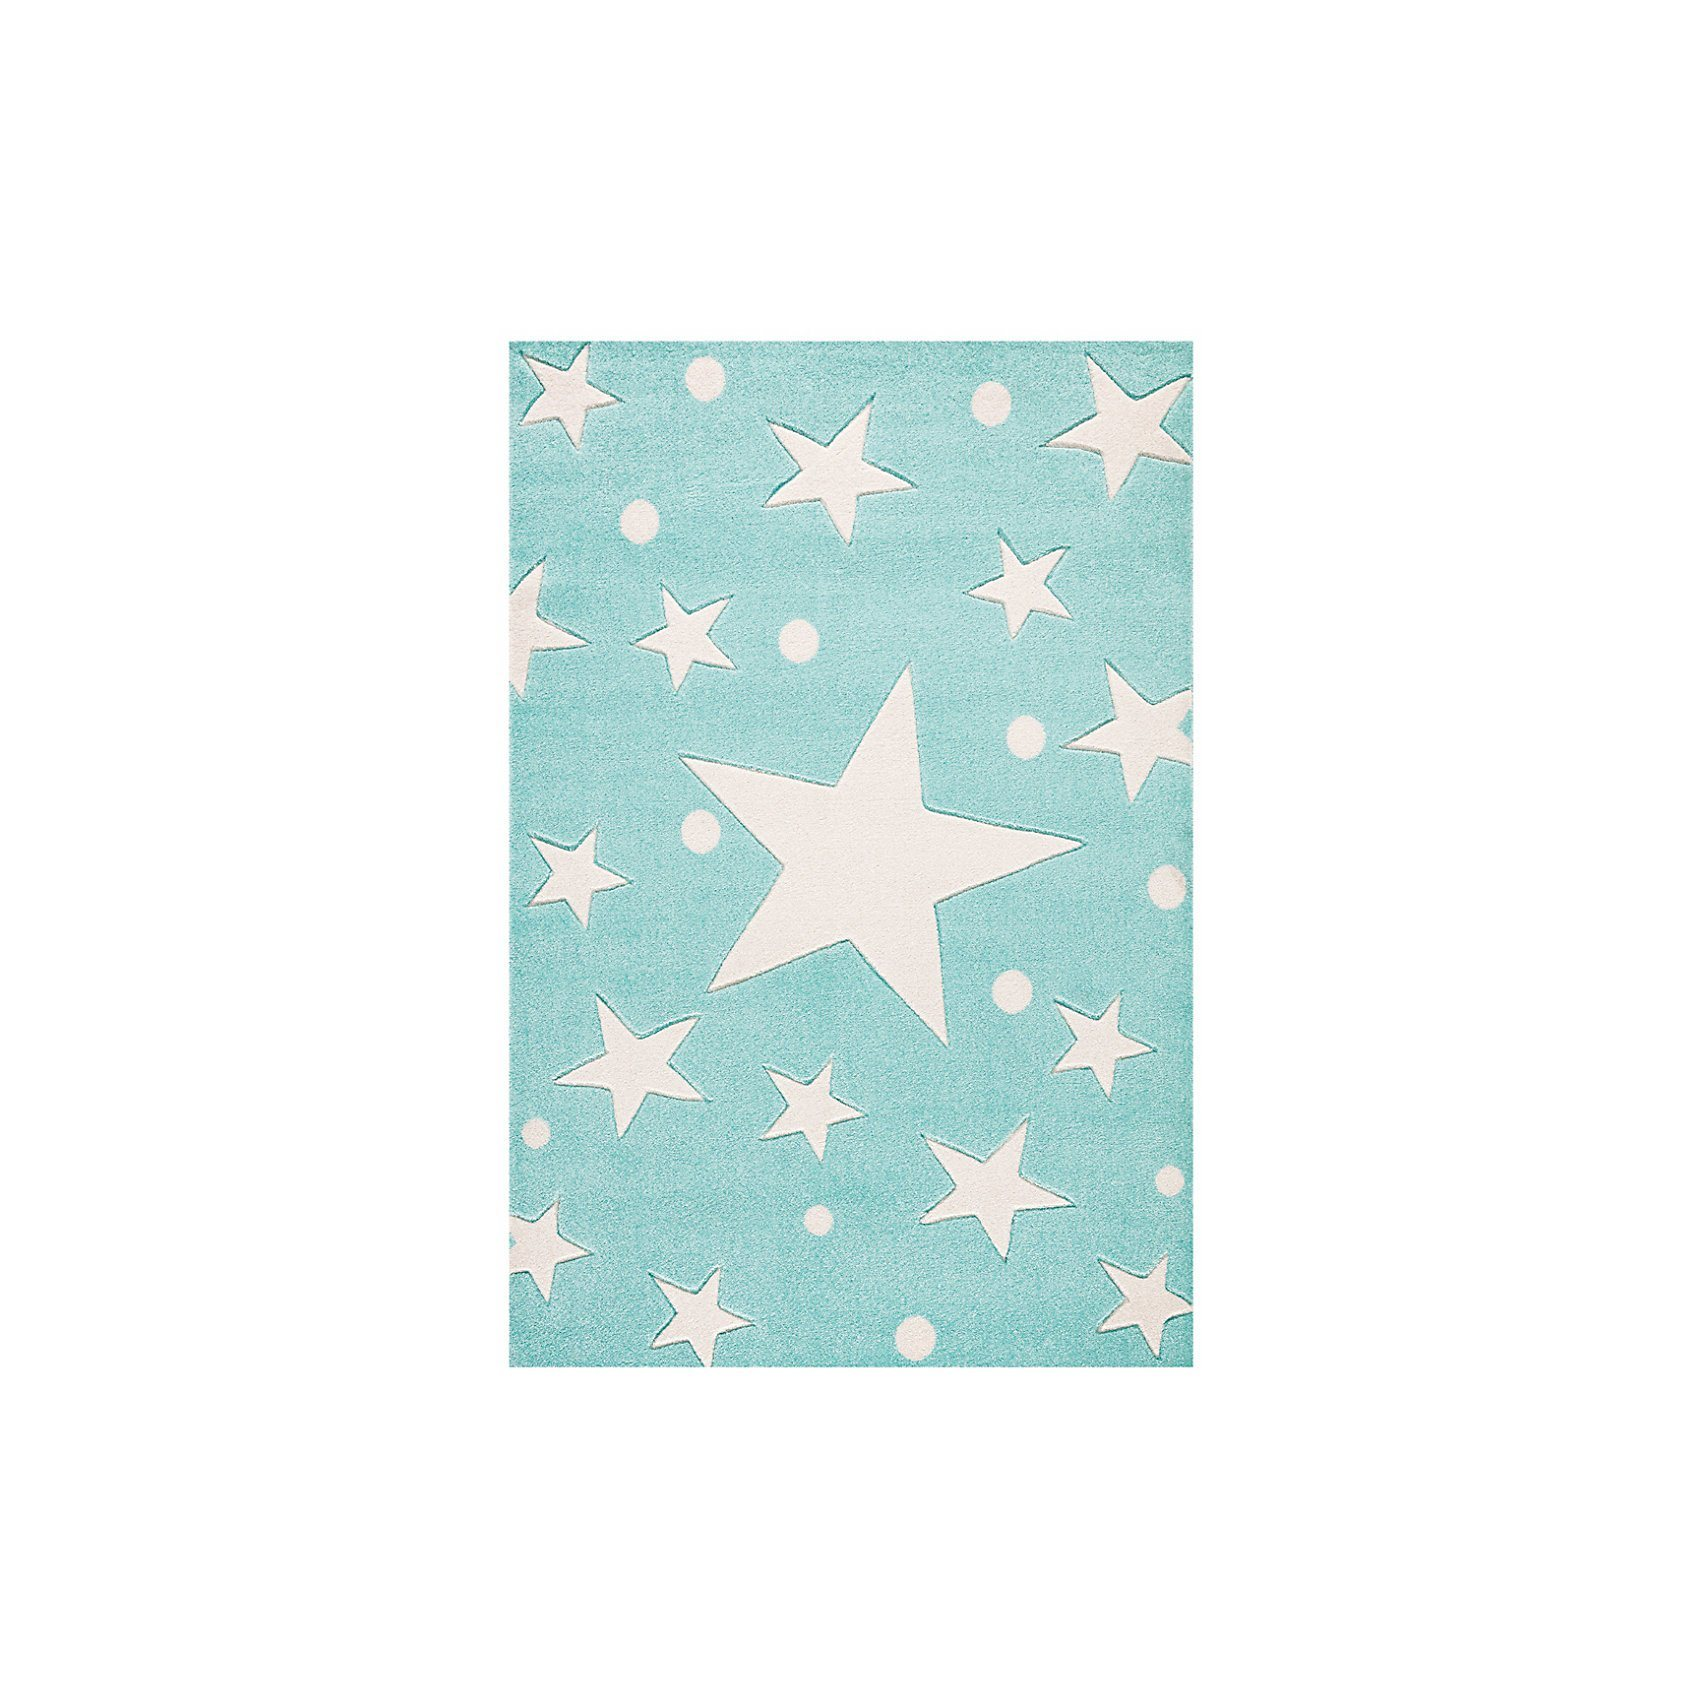 Happy Rugs Kinderteppich, STARS mint/weiss | Kinderzimmer > Textilien für Kinder > Kinderteppiche | Happy Rugs